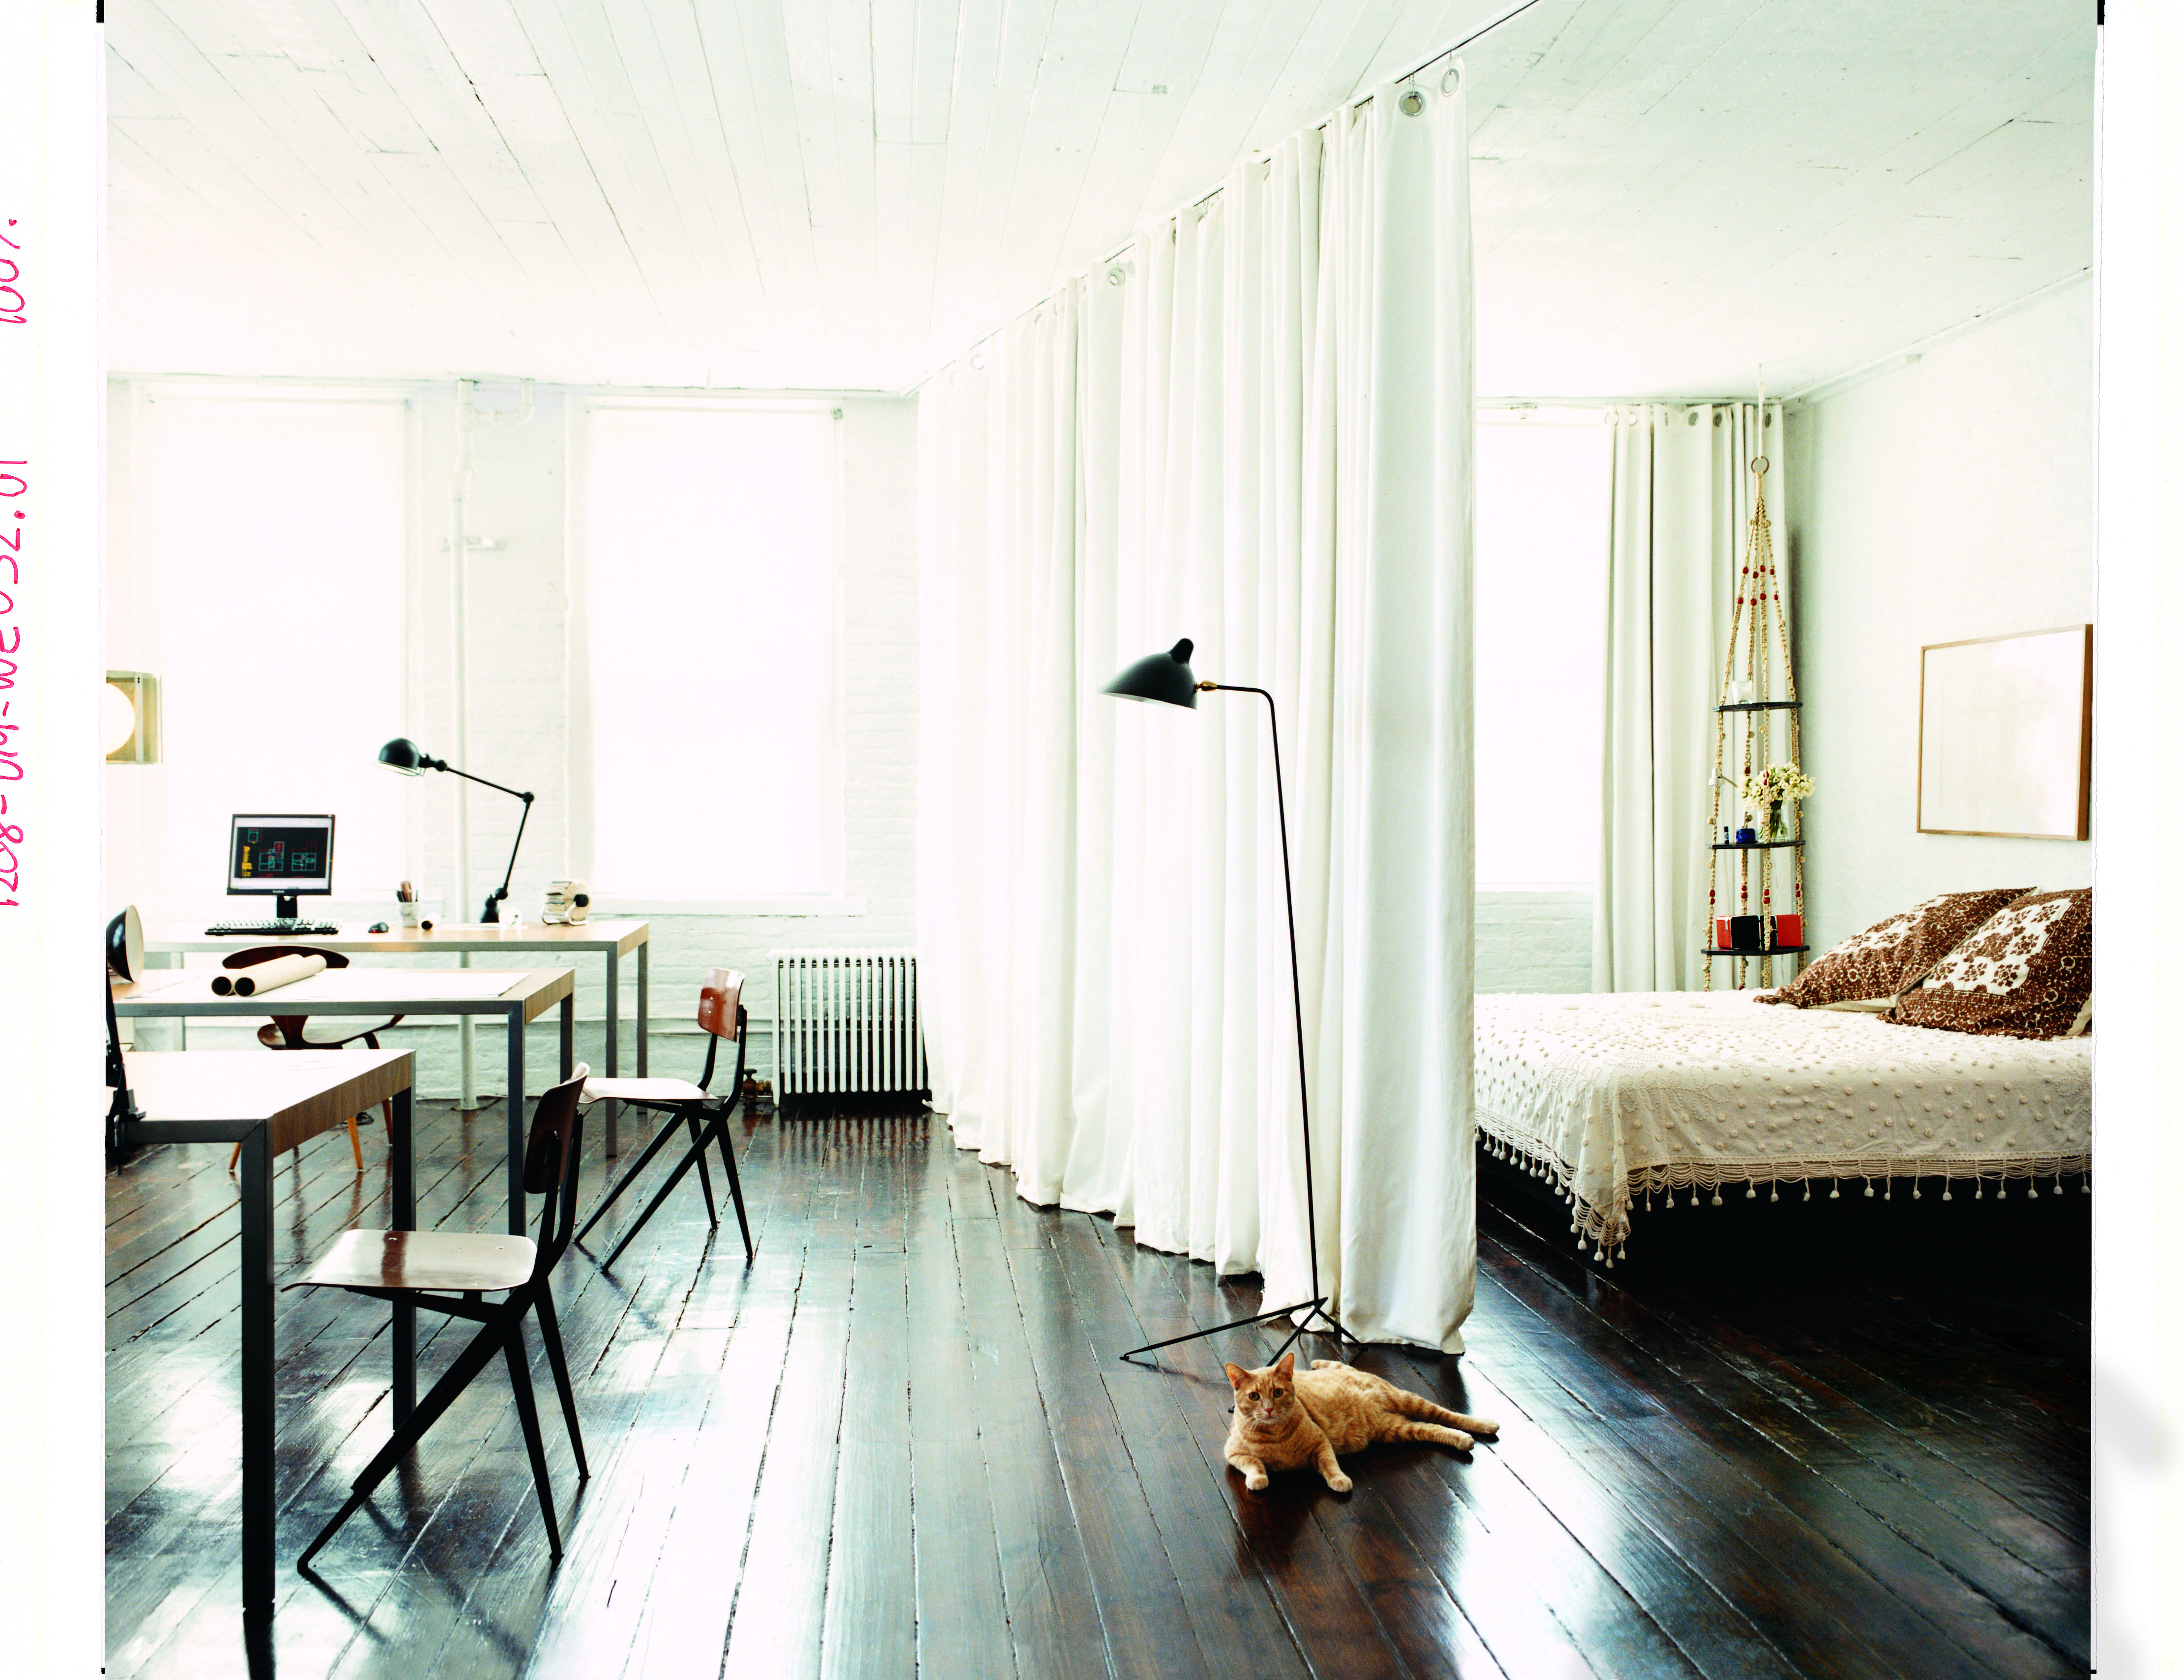 thick corduroy ikea curtains lined with blackout fabric and hung on ceiling tracks creates space in